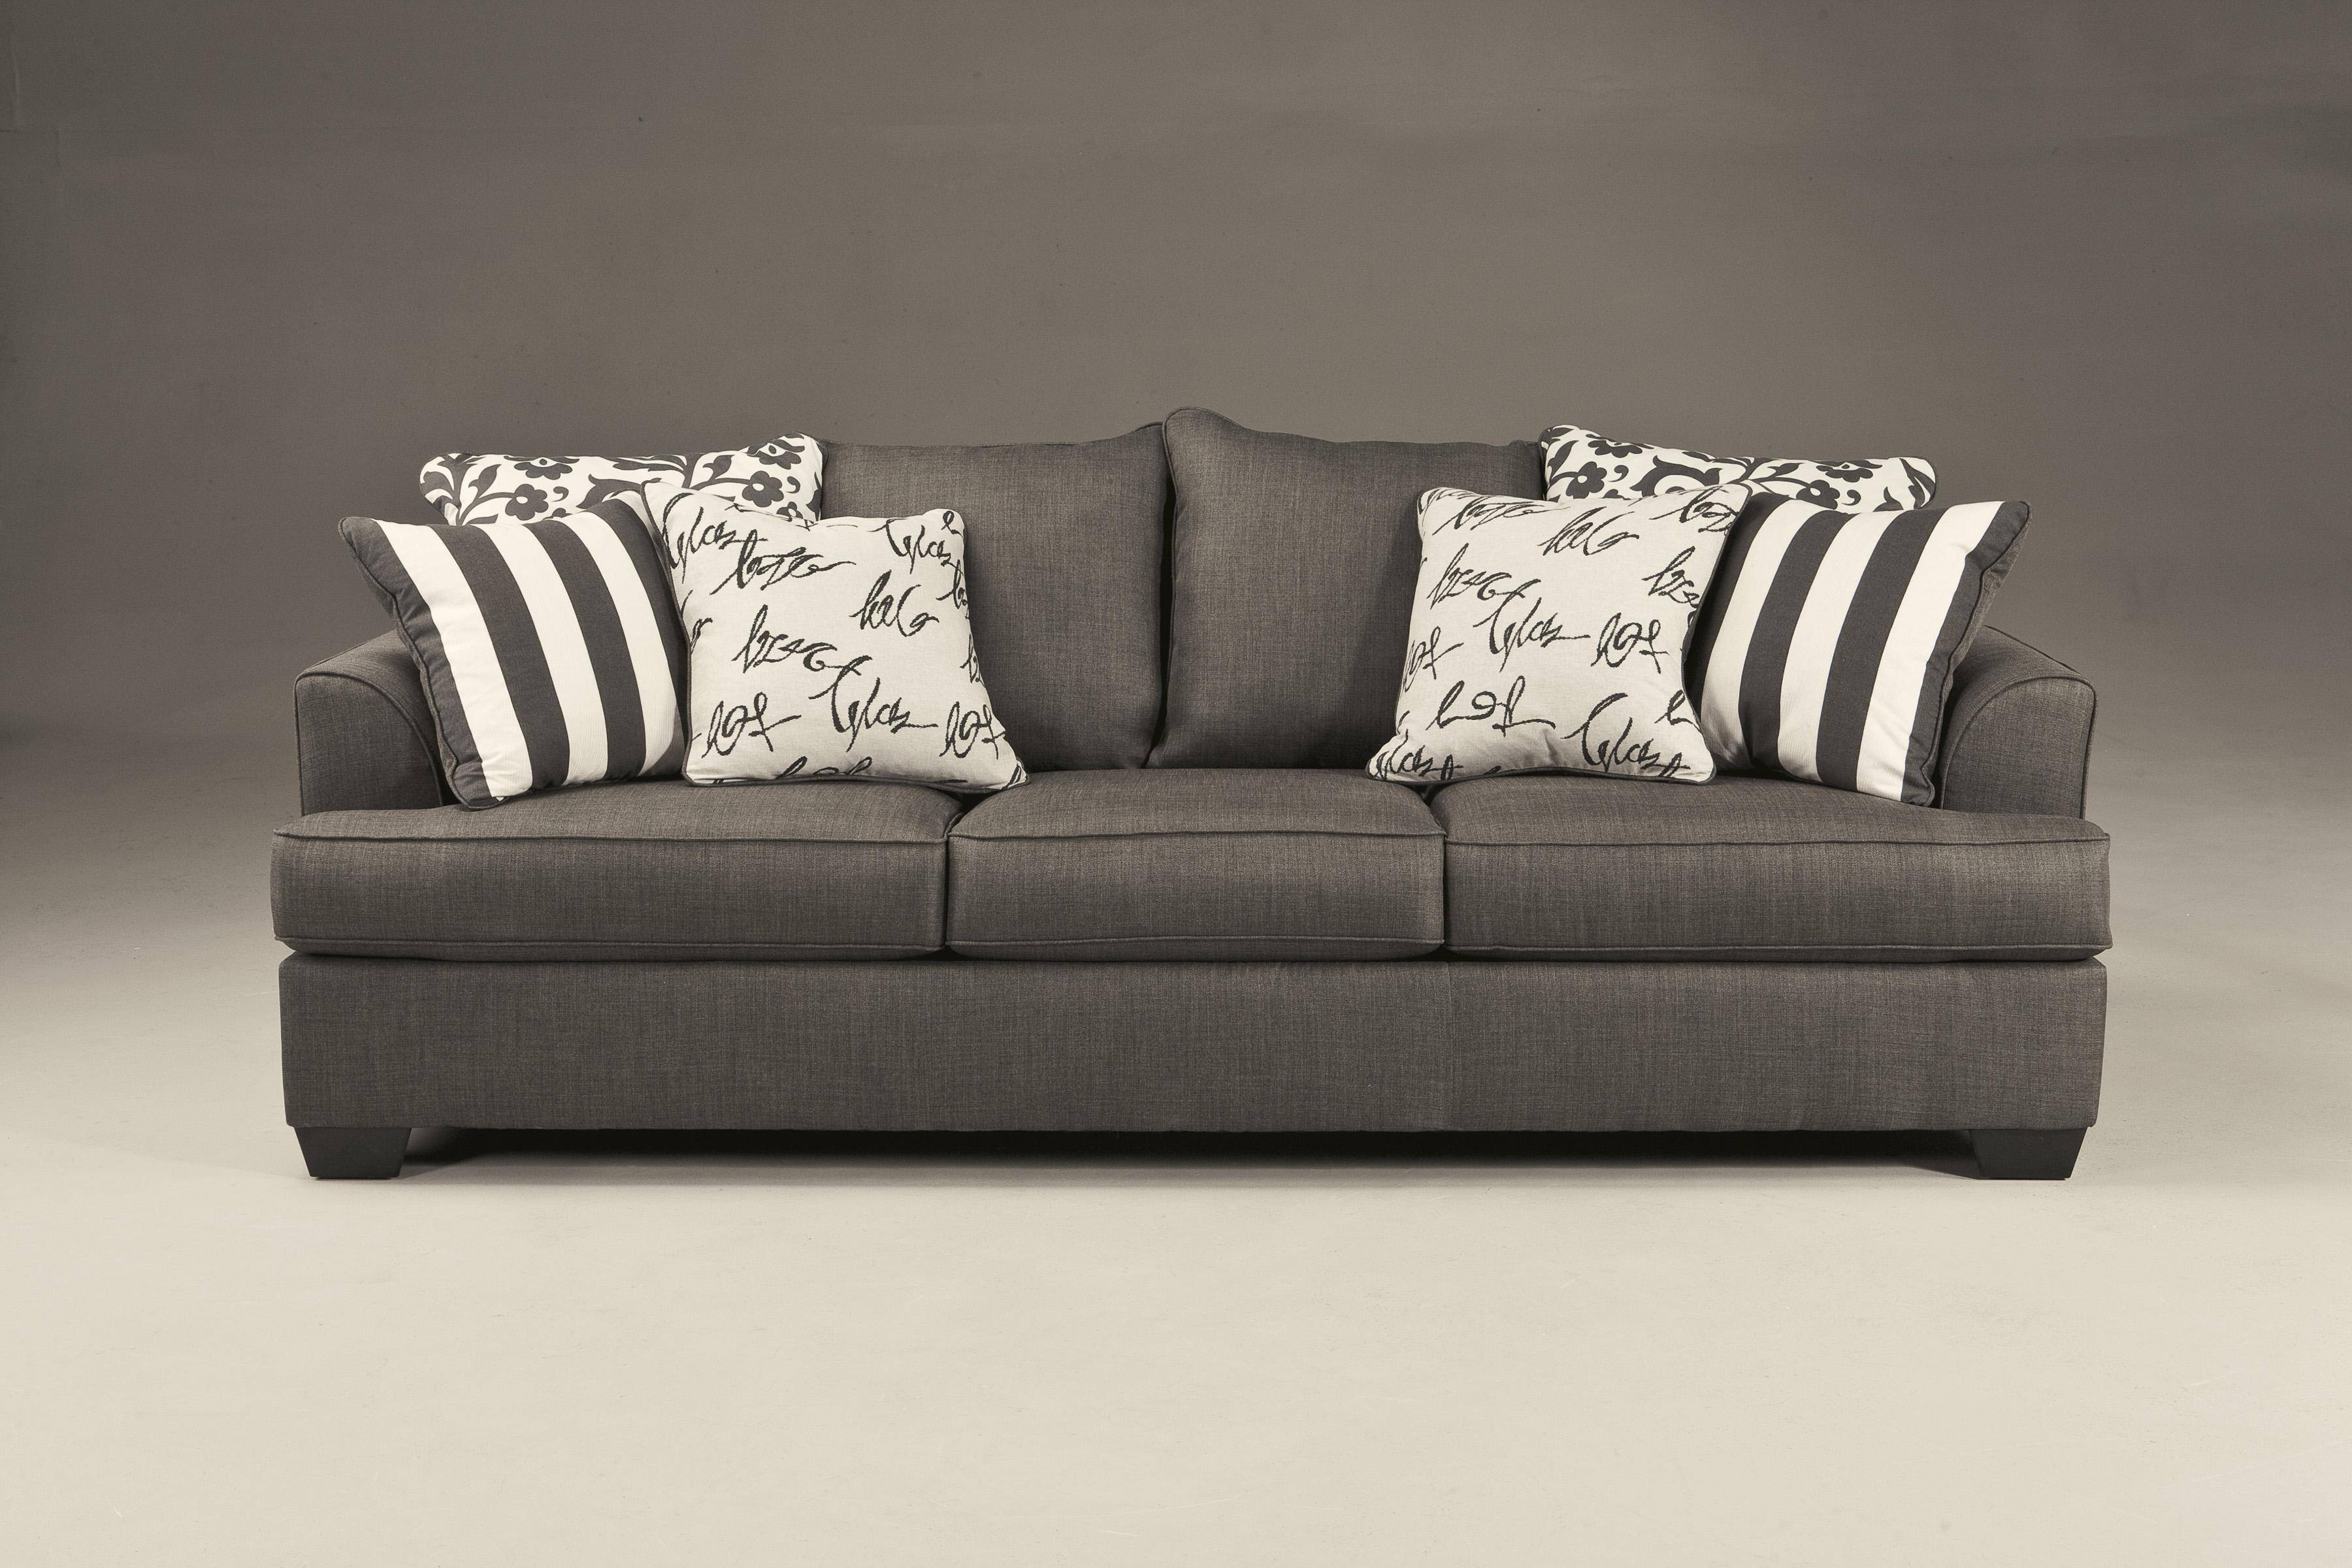 Ashley Levon 2 Piece Living Room Set In Charcoal 73403 38